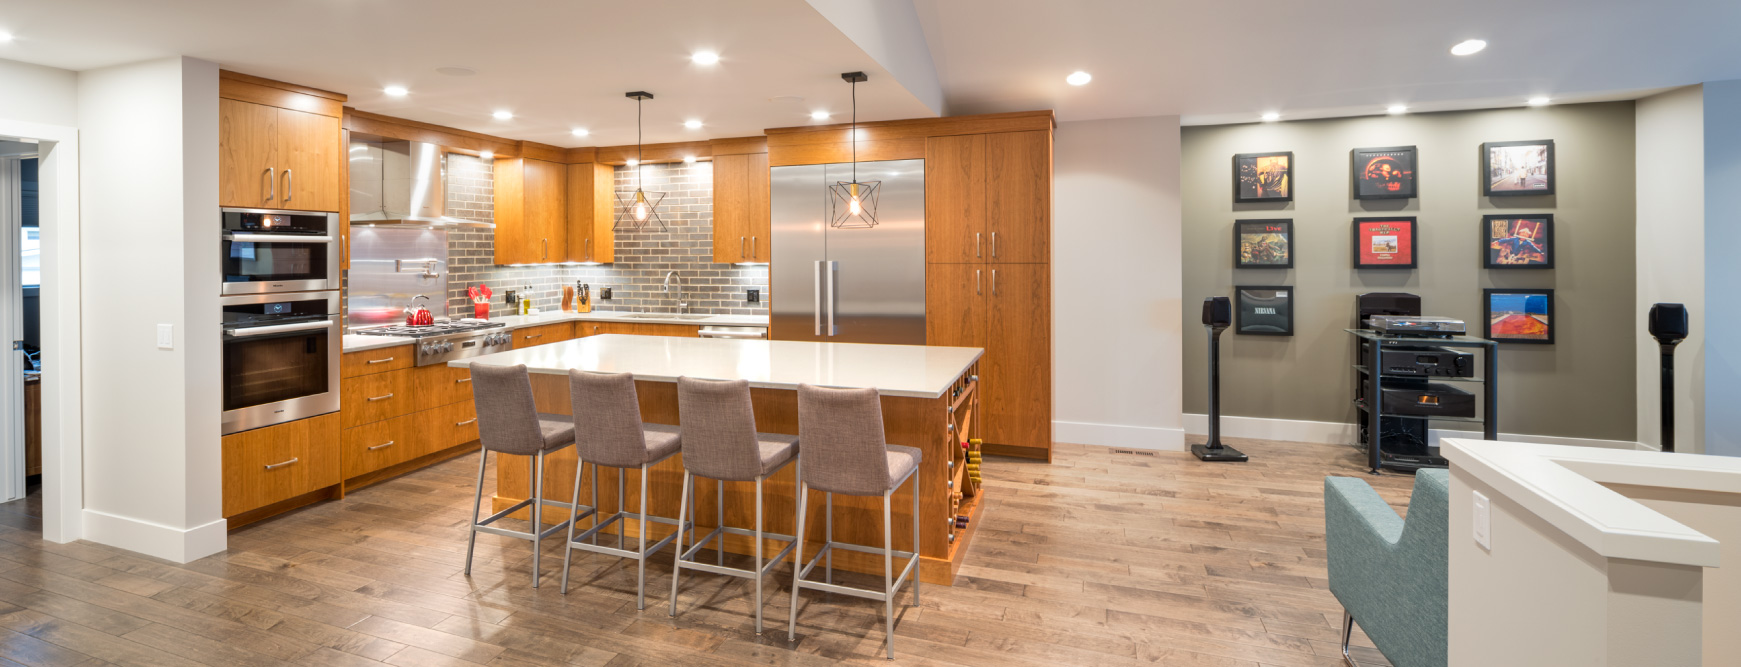 Award-winning Calgary kitchen renovation with custom cherry cabinets and quartz countertops.